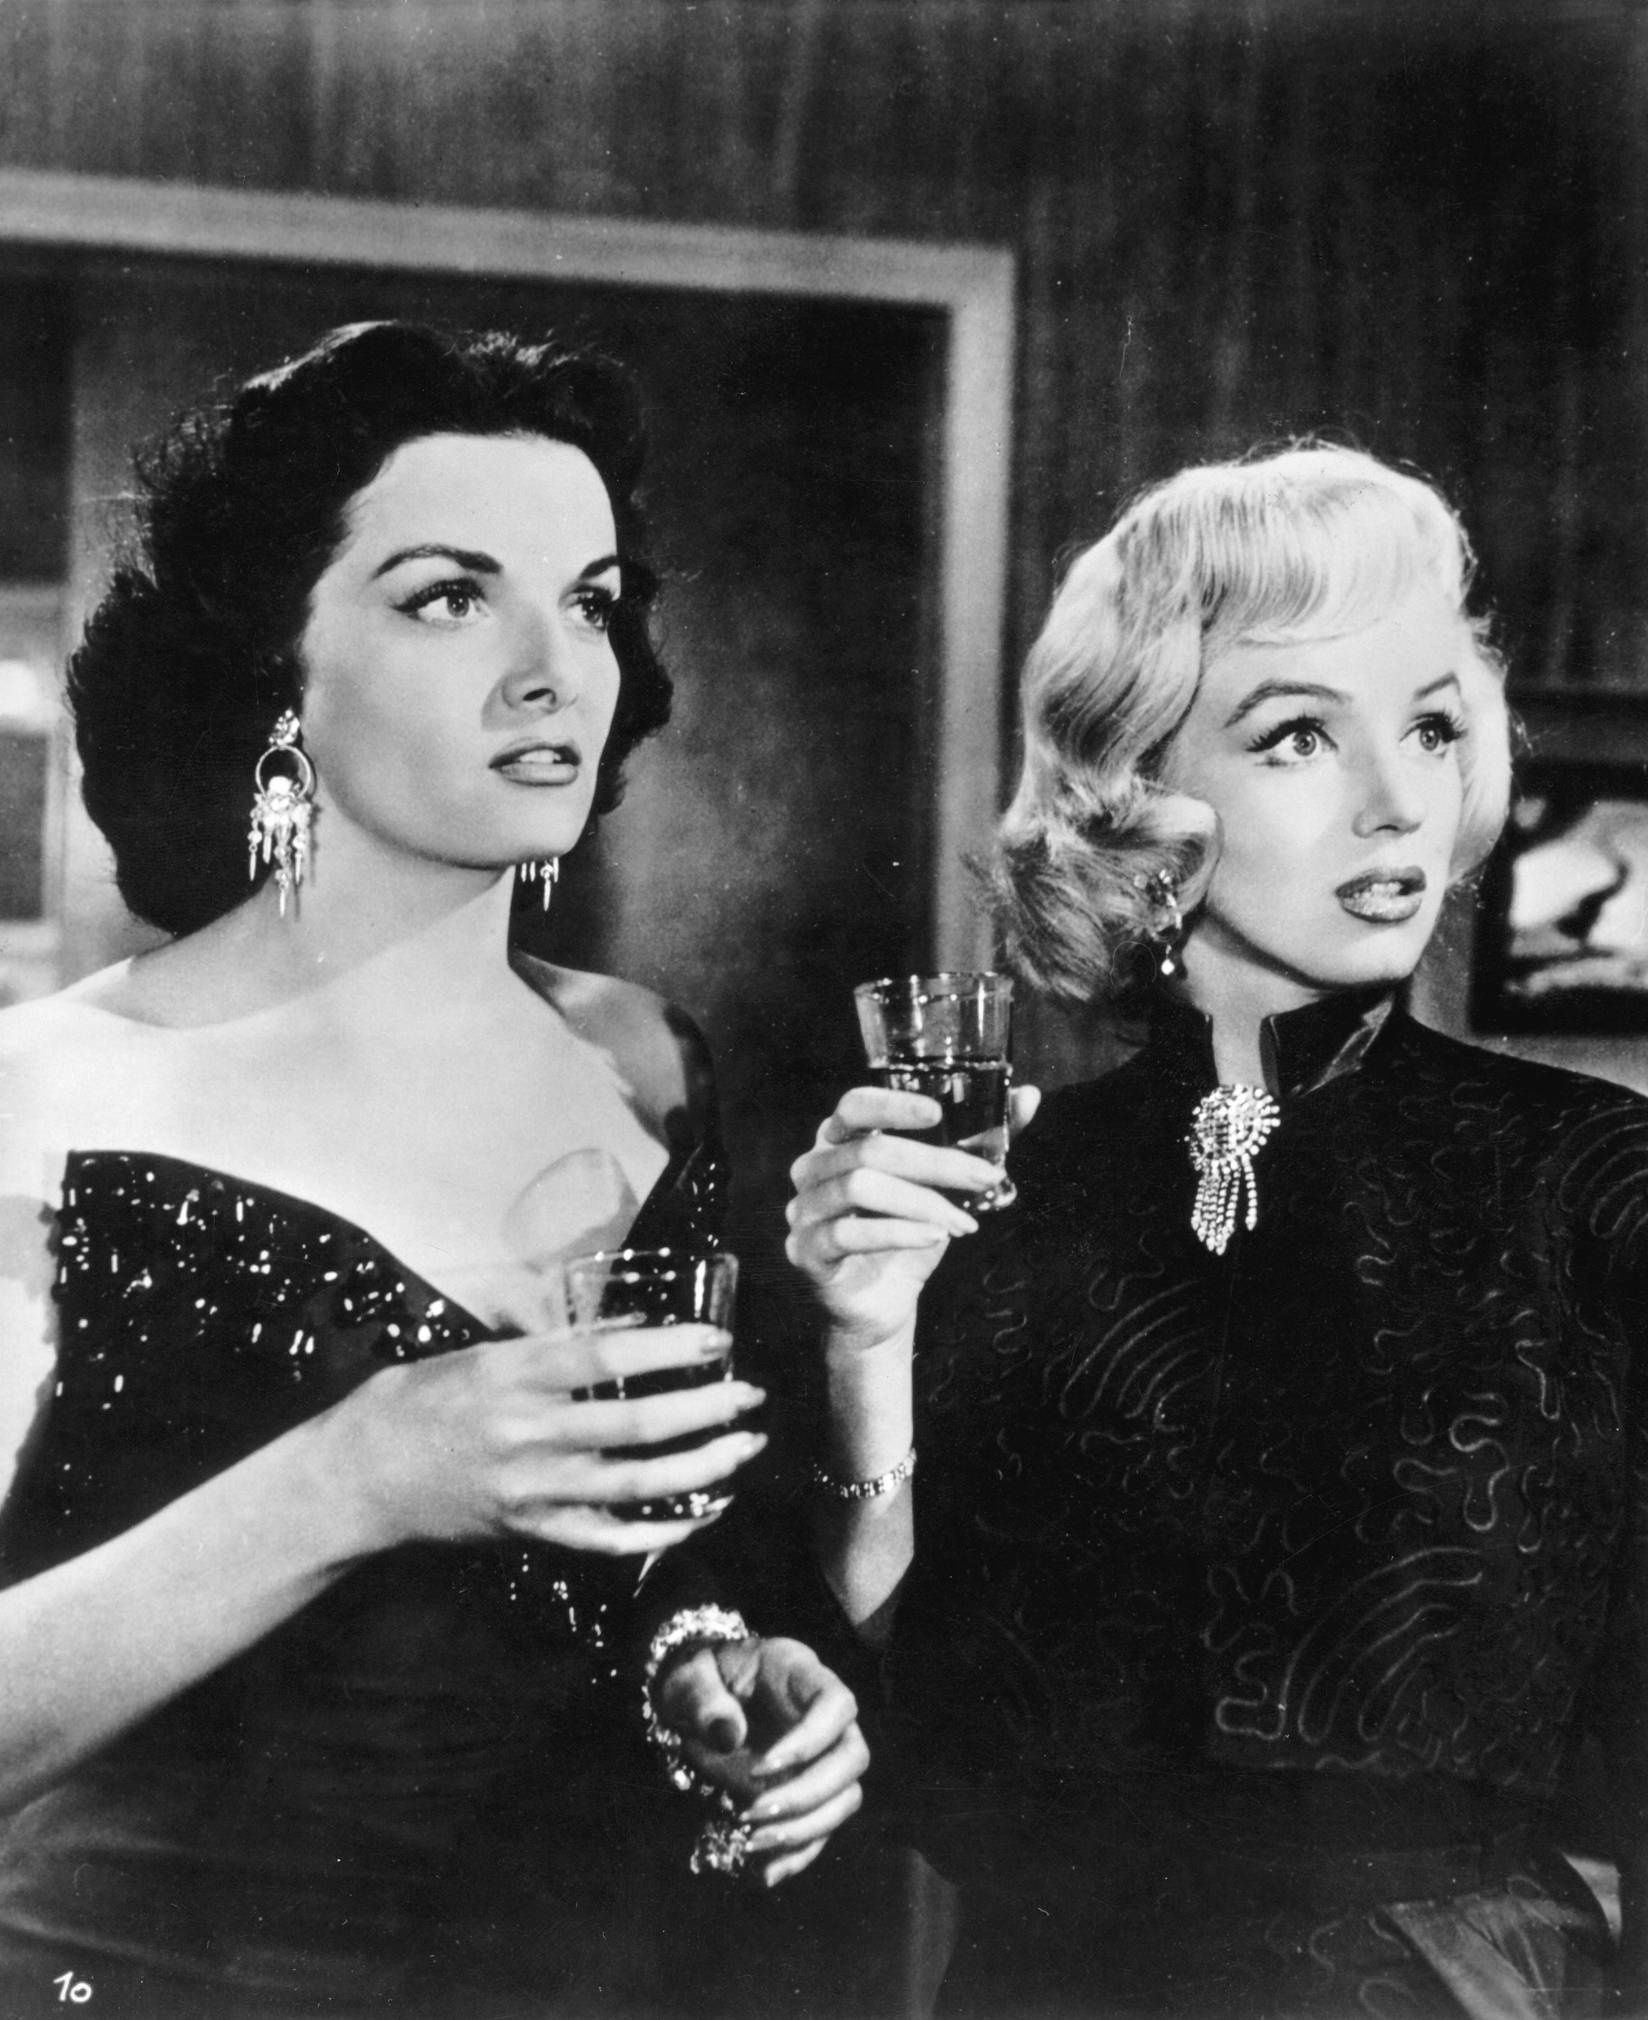 Jane Russell, Marilyn Monroe - Gentlemen Prefer Blondes (Howard Hawks, 1953) d60a8b54ecaa